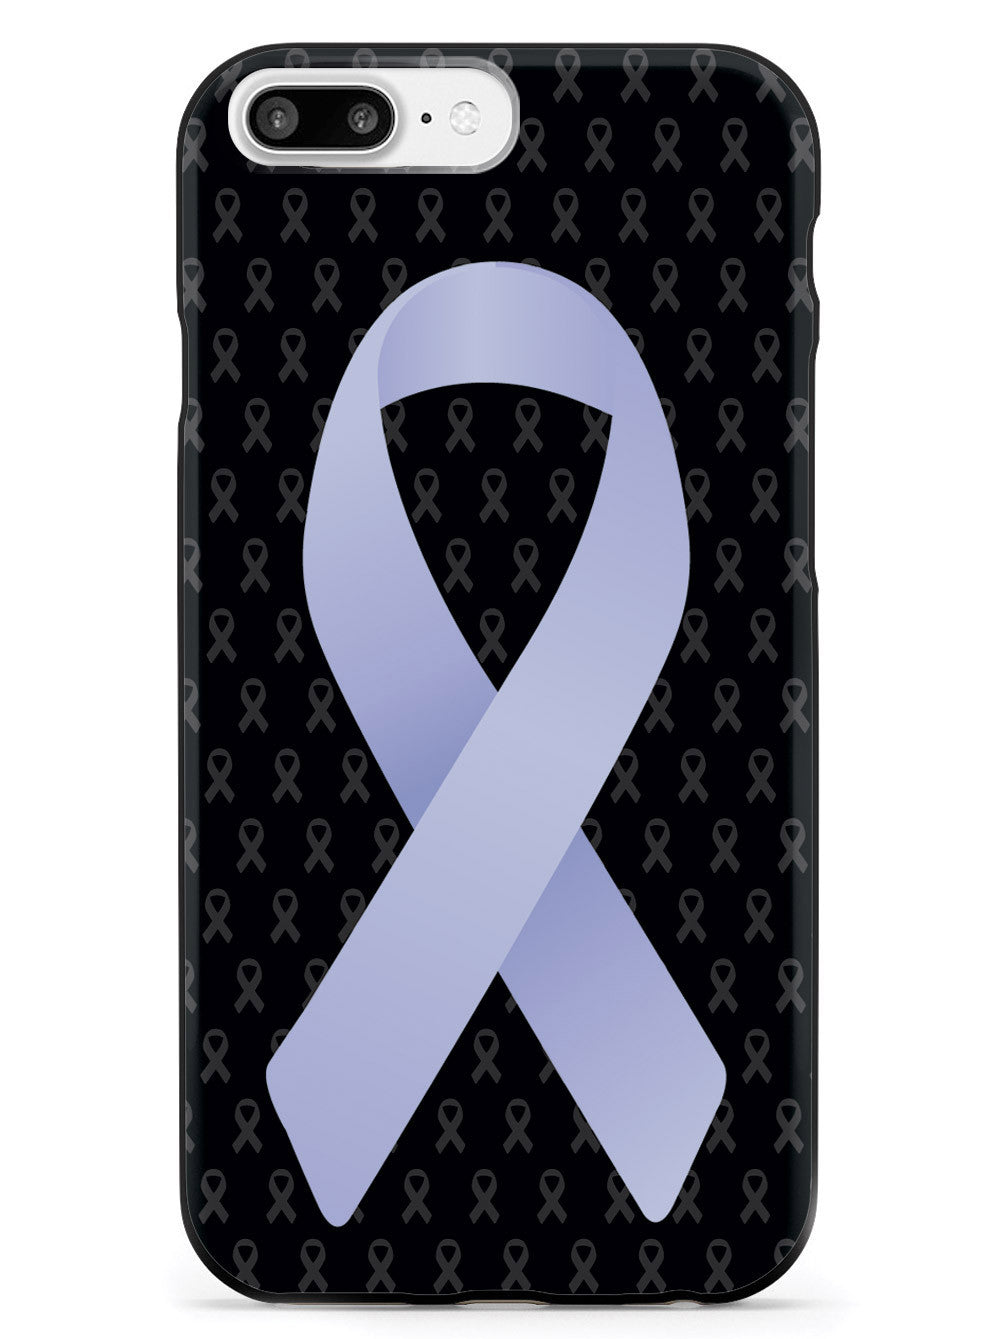 Periwinkle Awareness Ribbon - Black Case